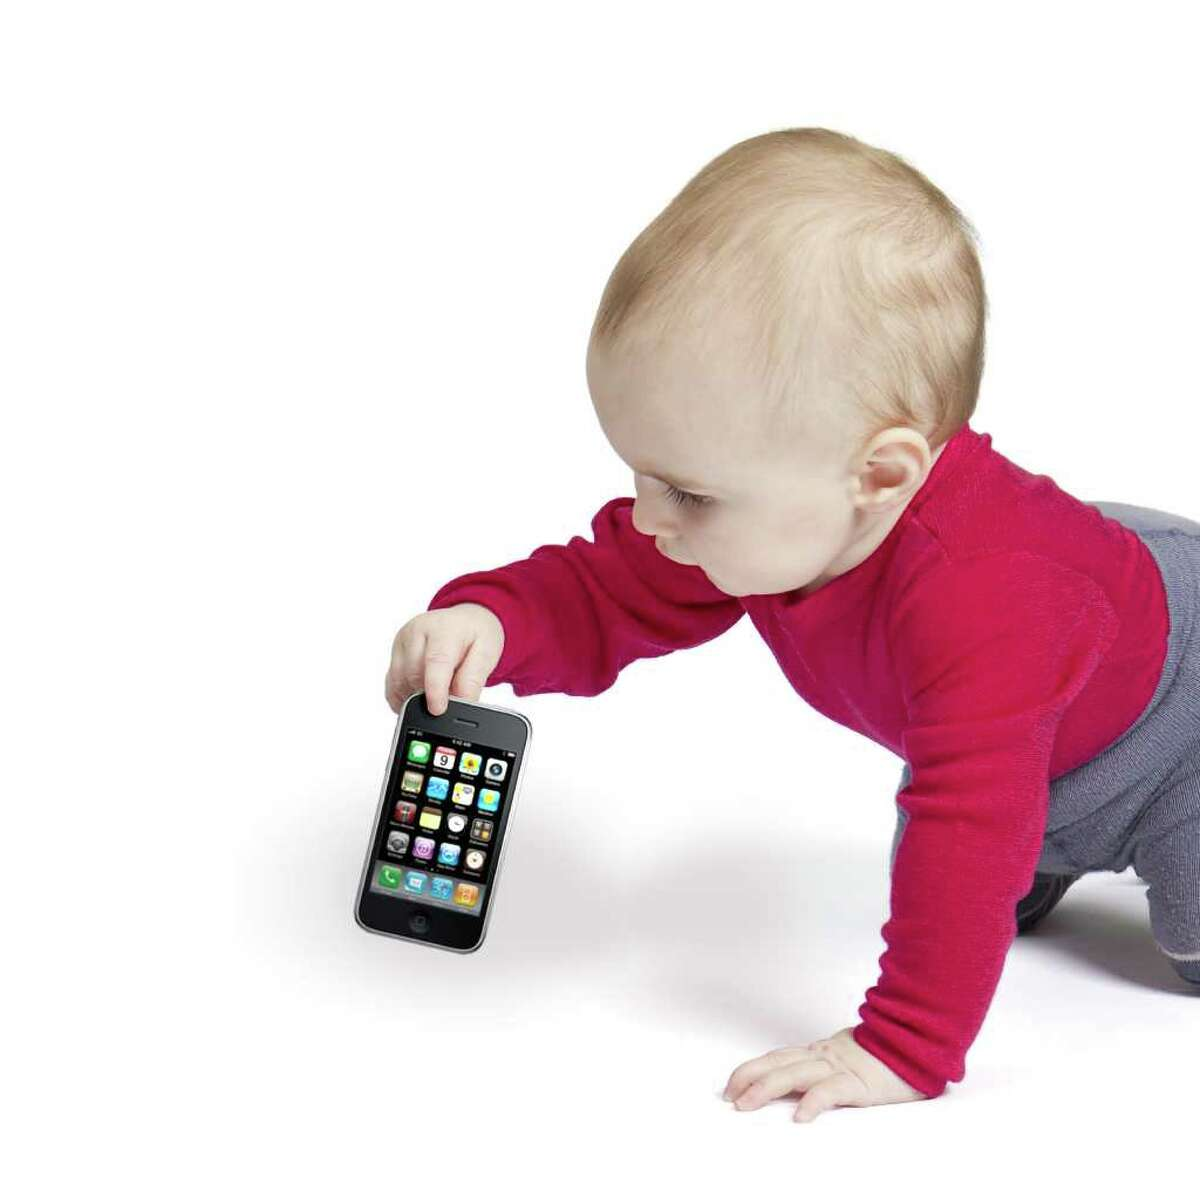 Little ones are intrigued by smartphones and other electronic devices, but many products can help protect the items.